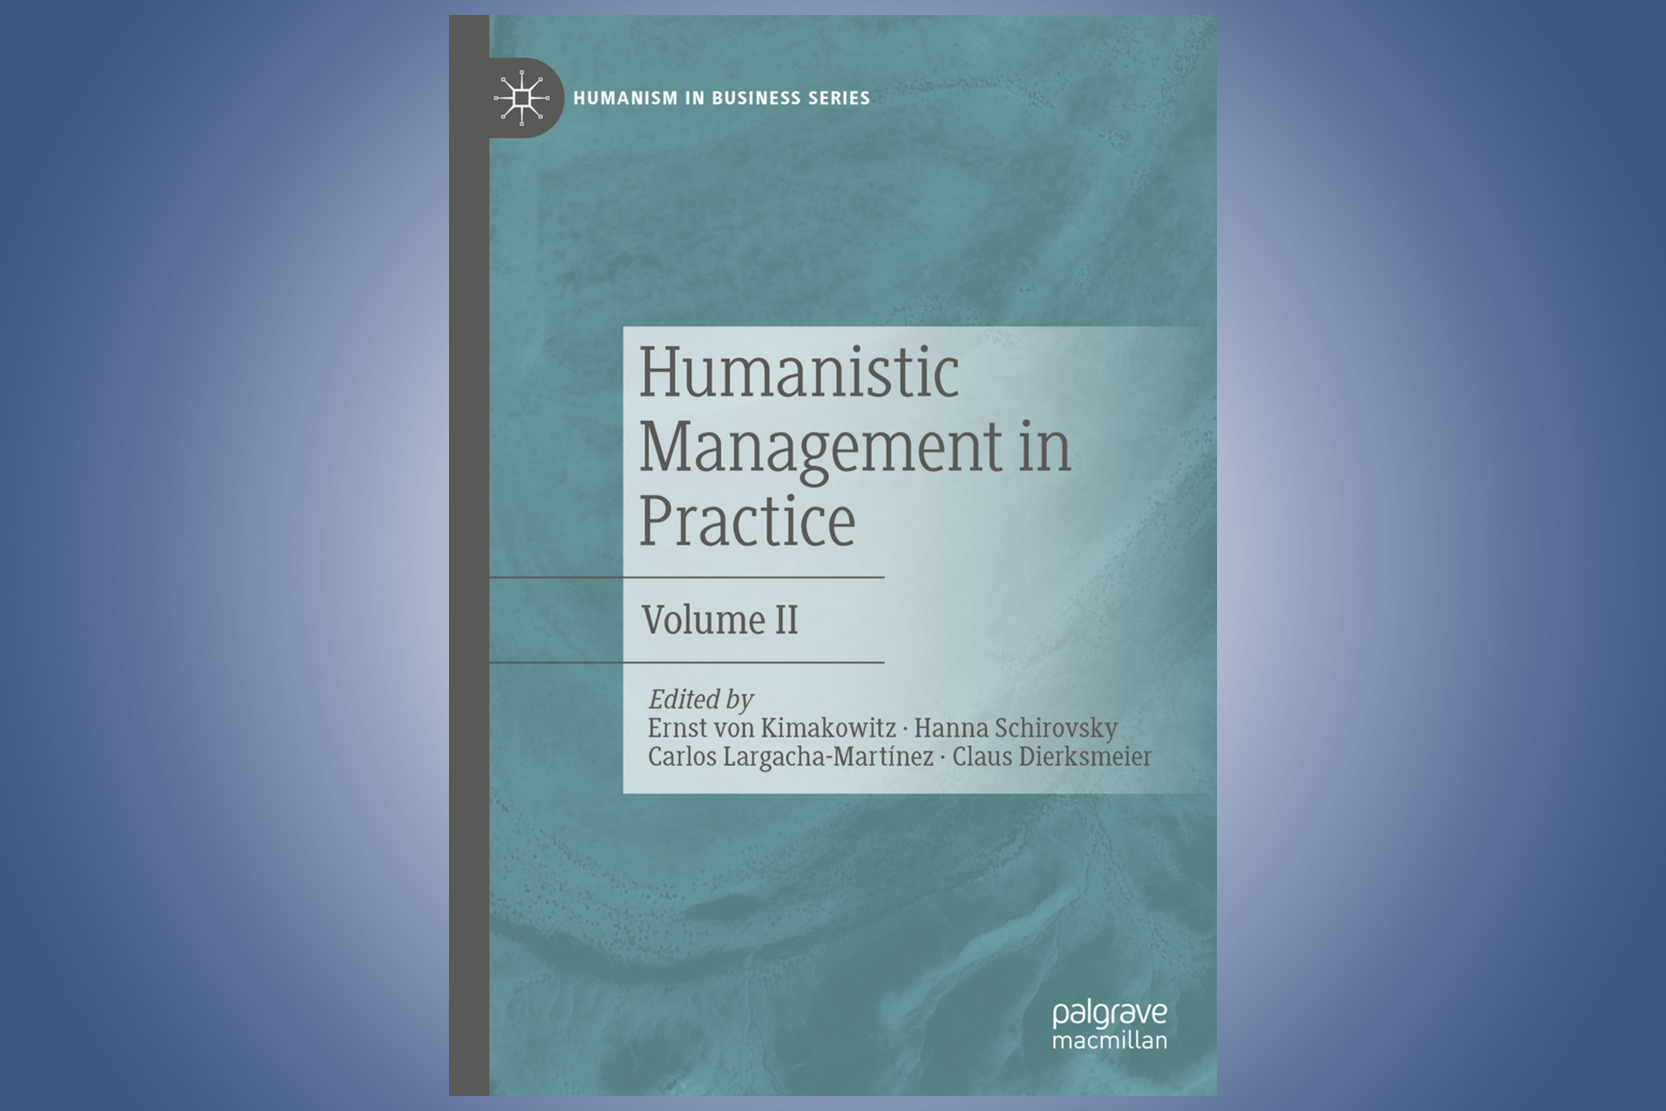 Humanistic Management in Practice Vol. II